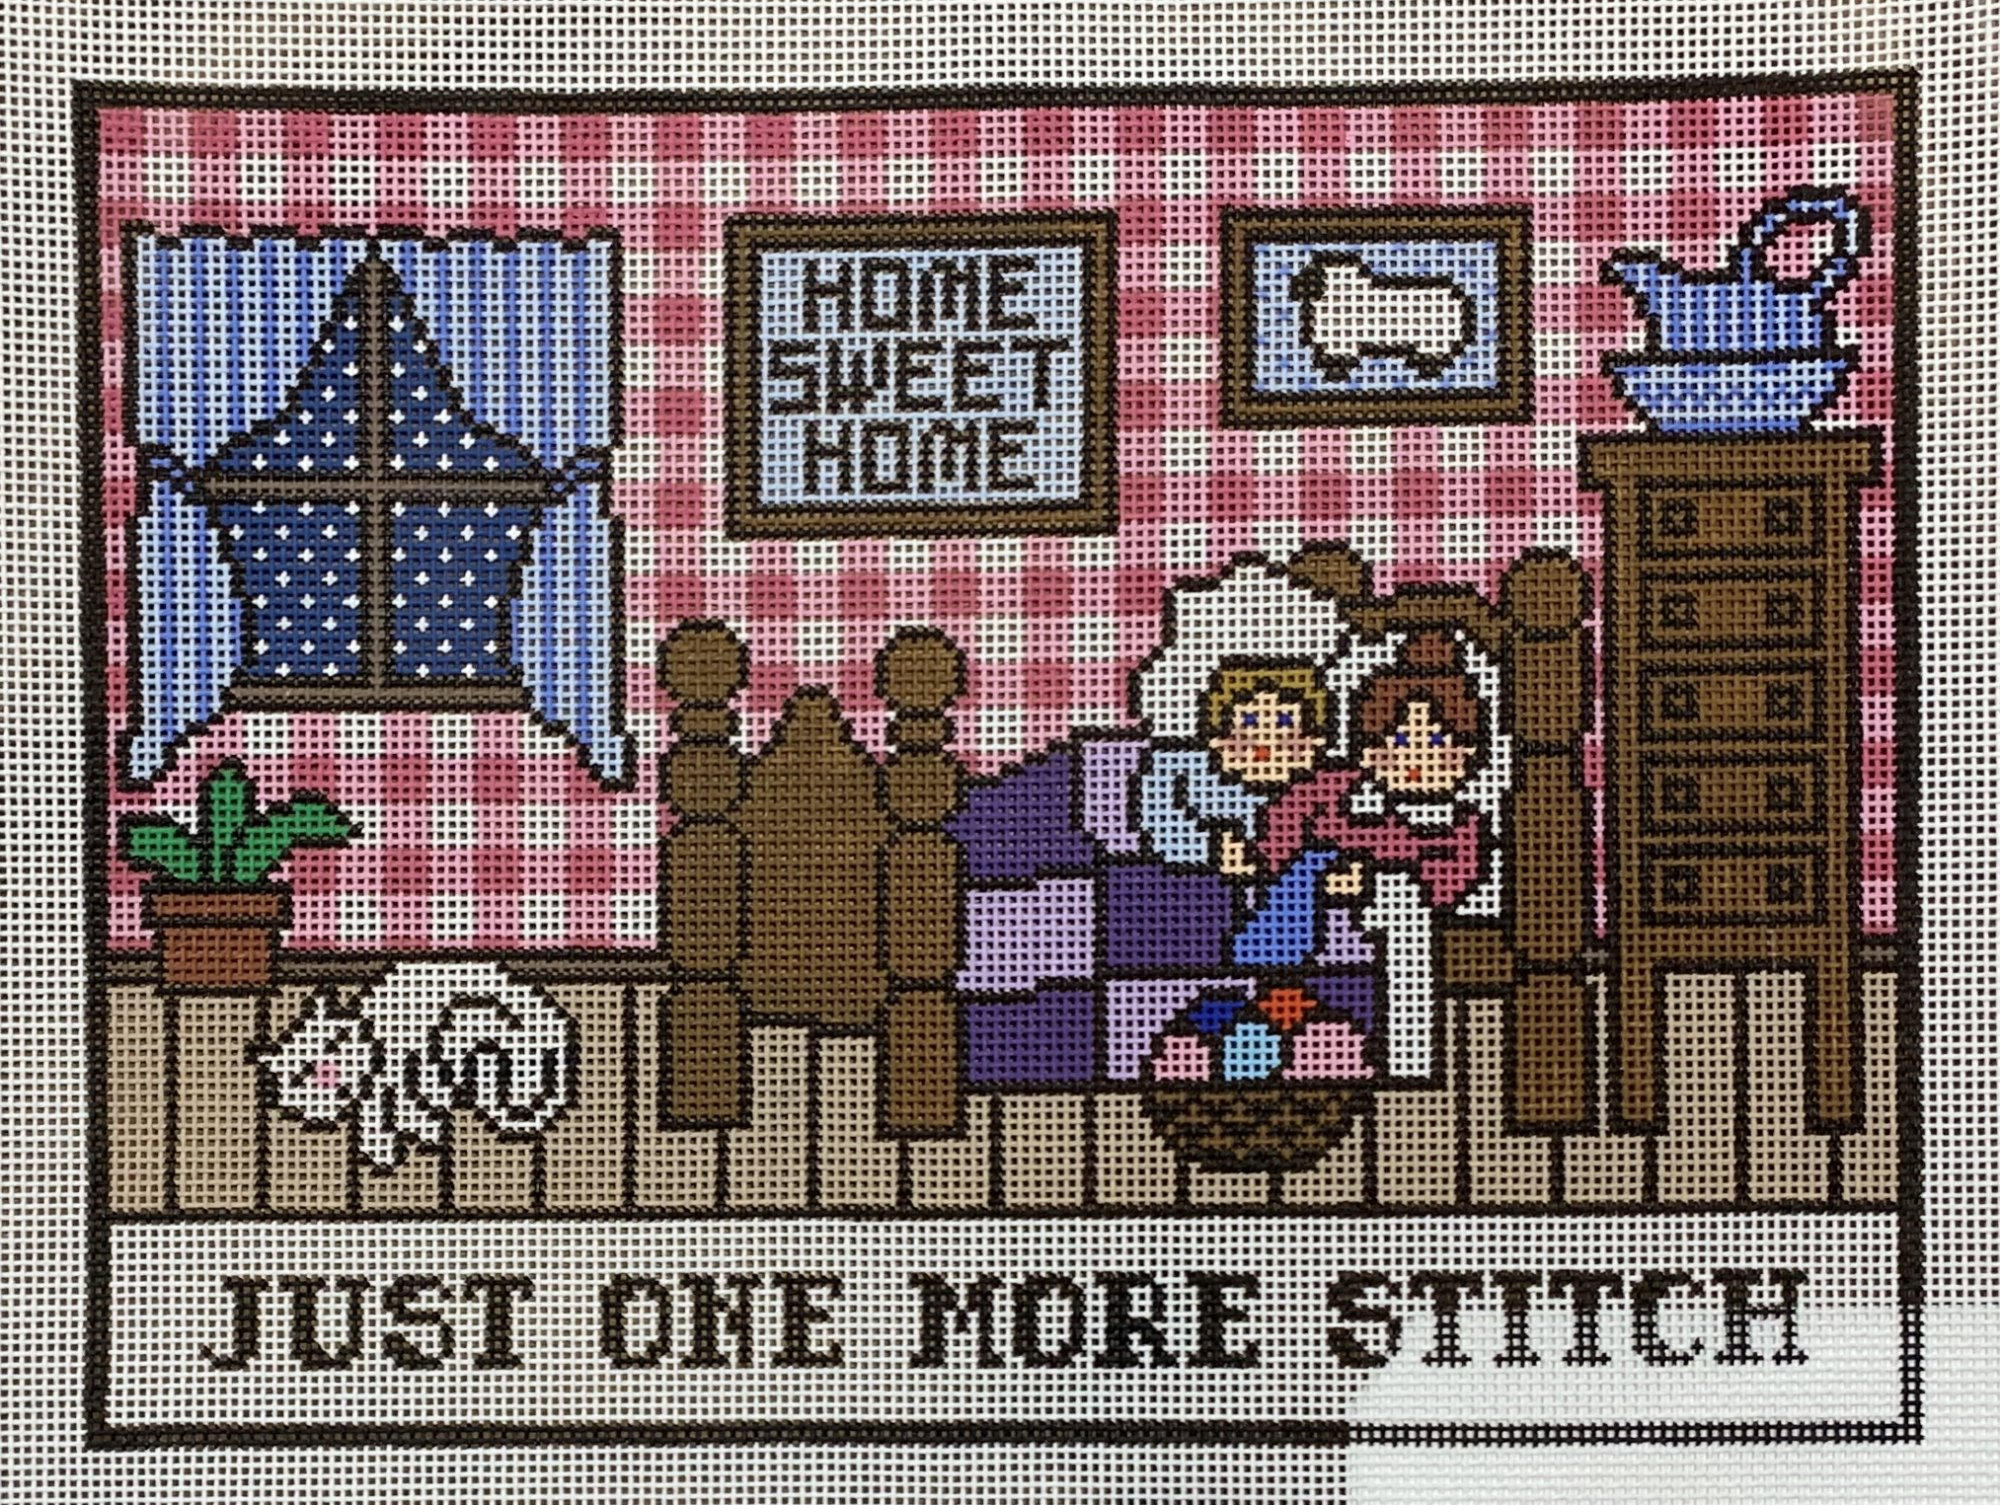 Just One More Stitch